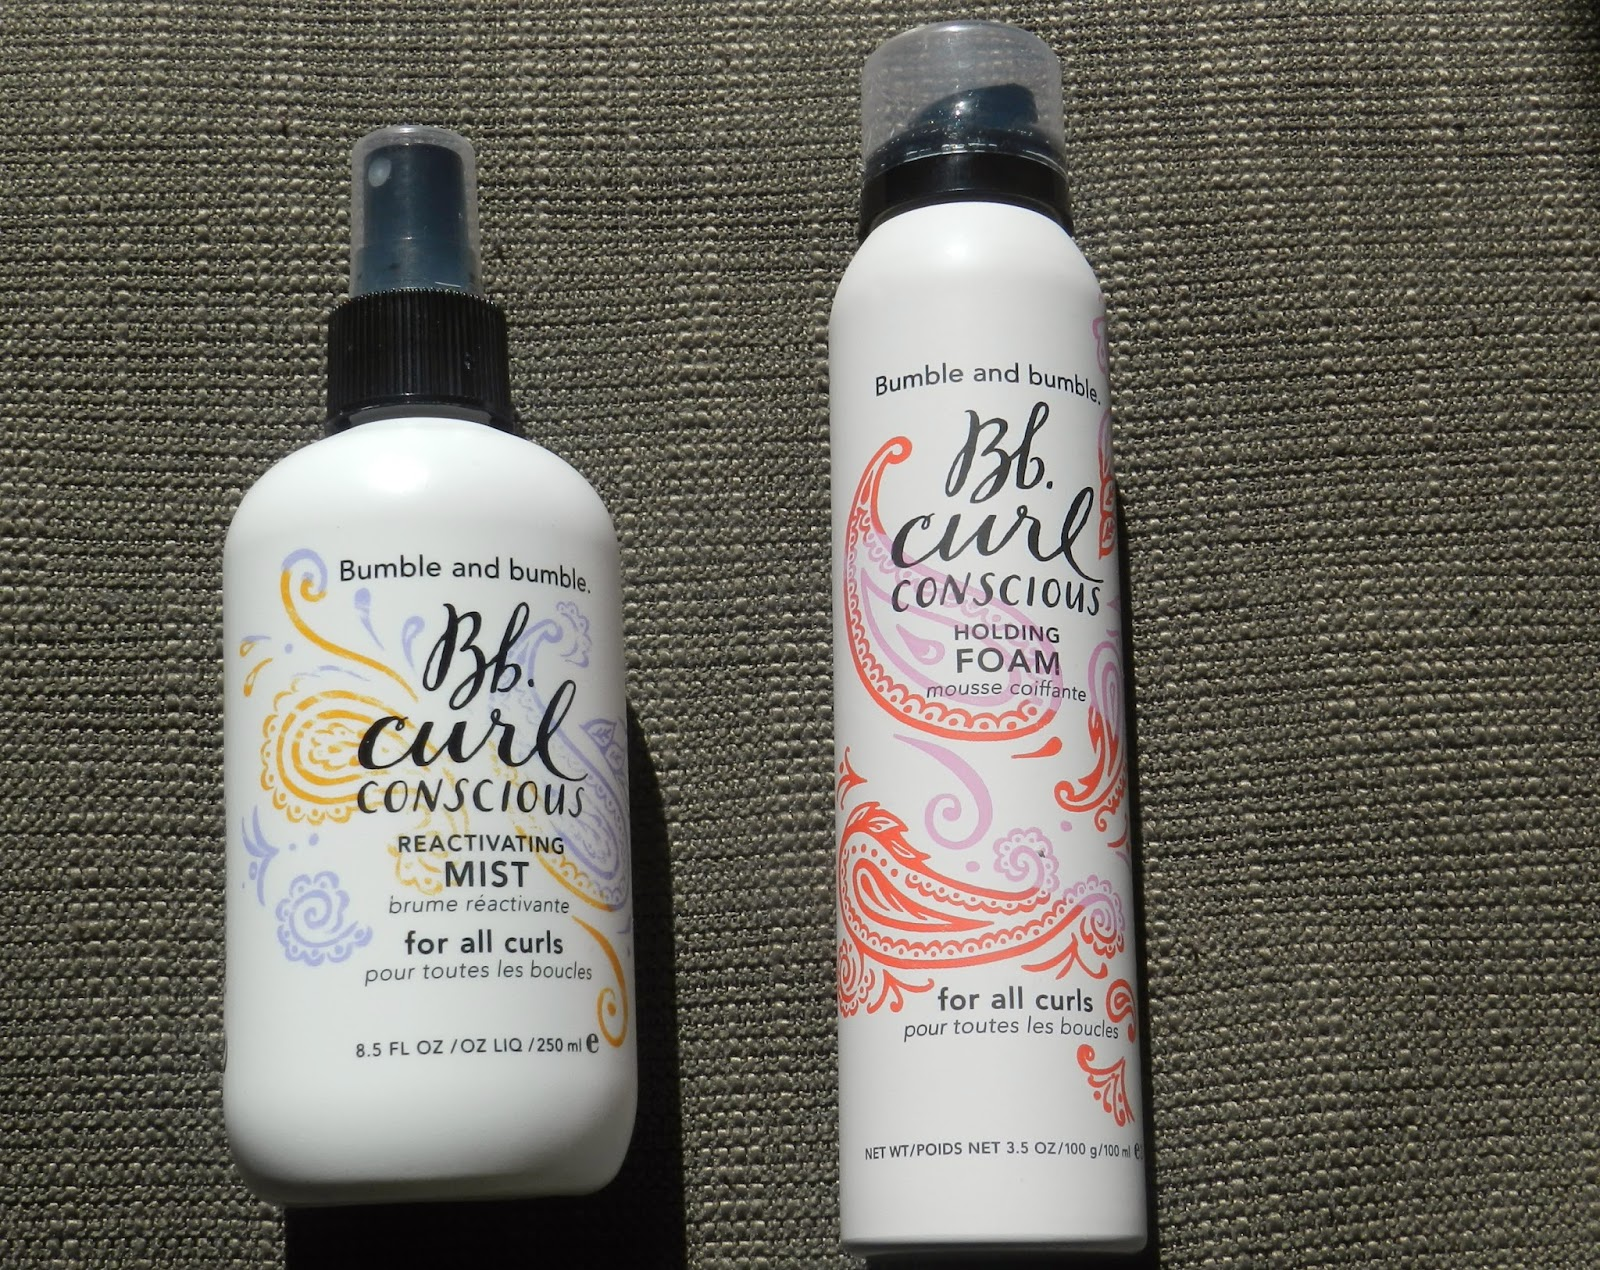 Bumble and Bumble Curl Conscious Reactivating Mist and Holding Foam